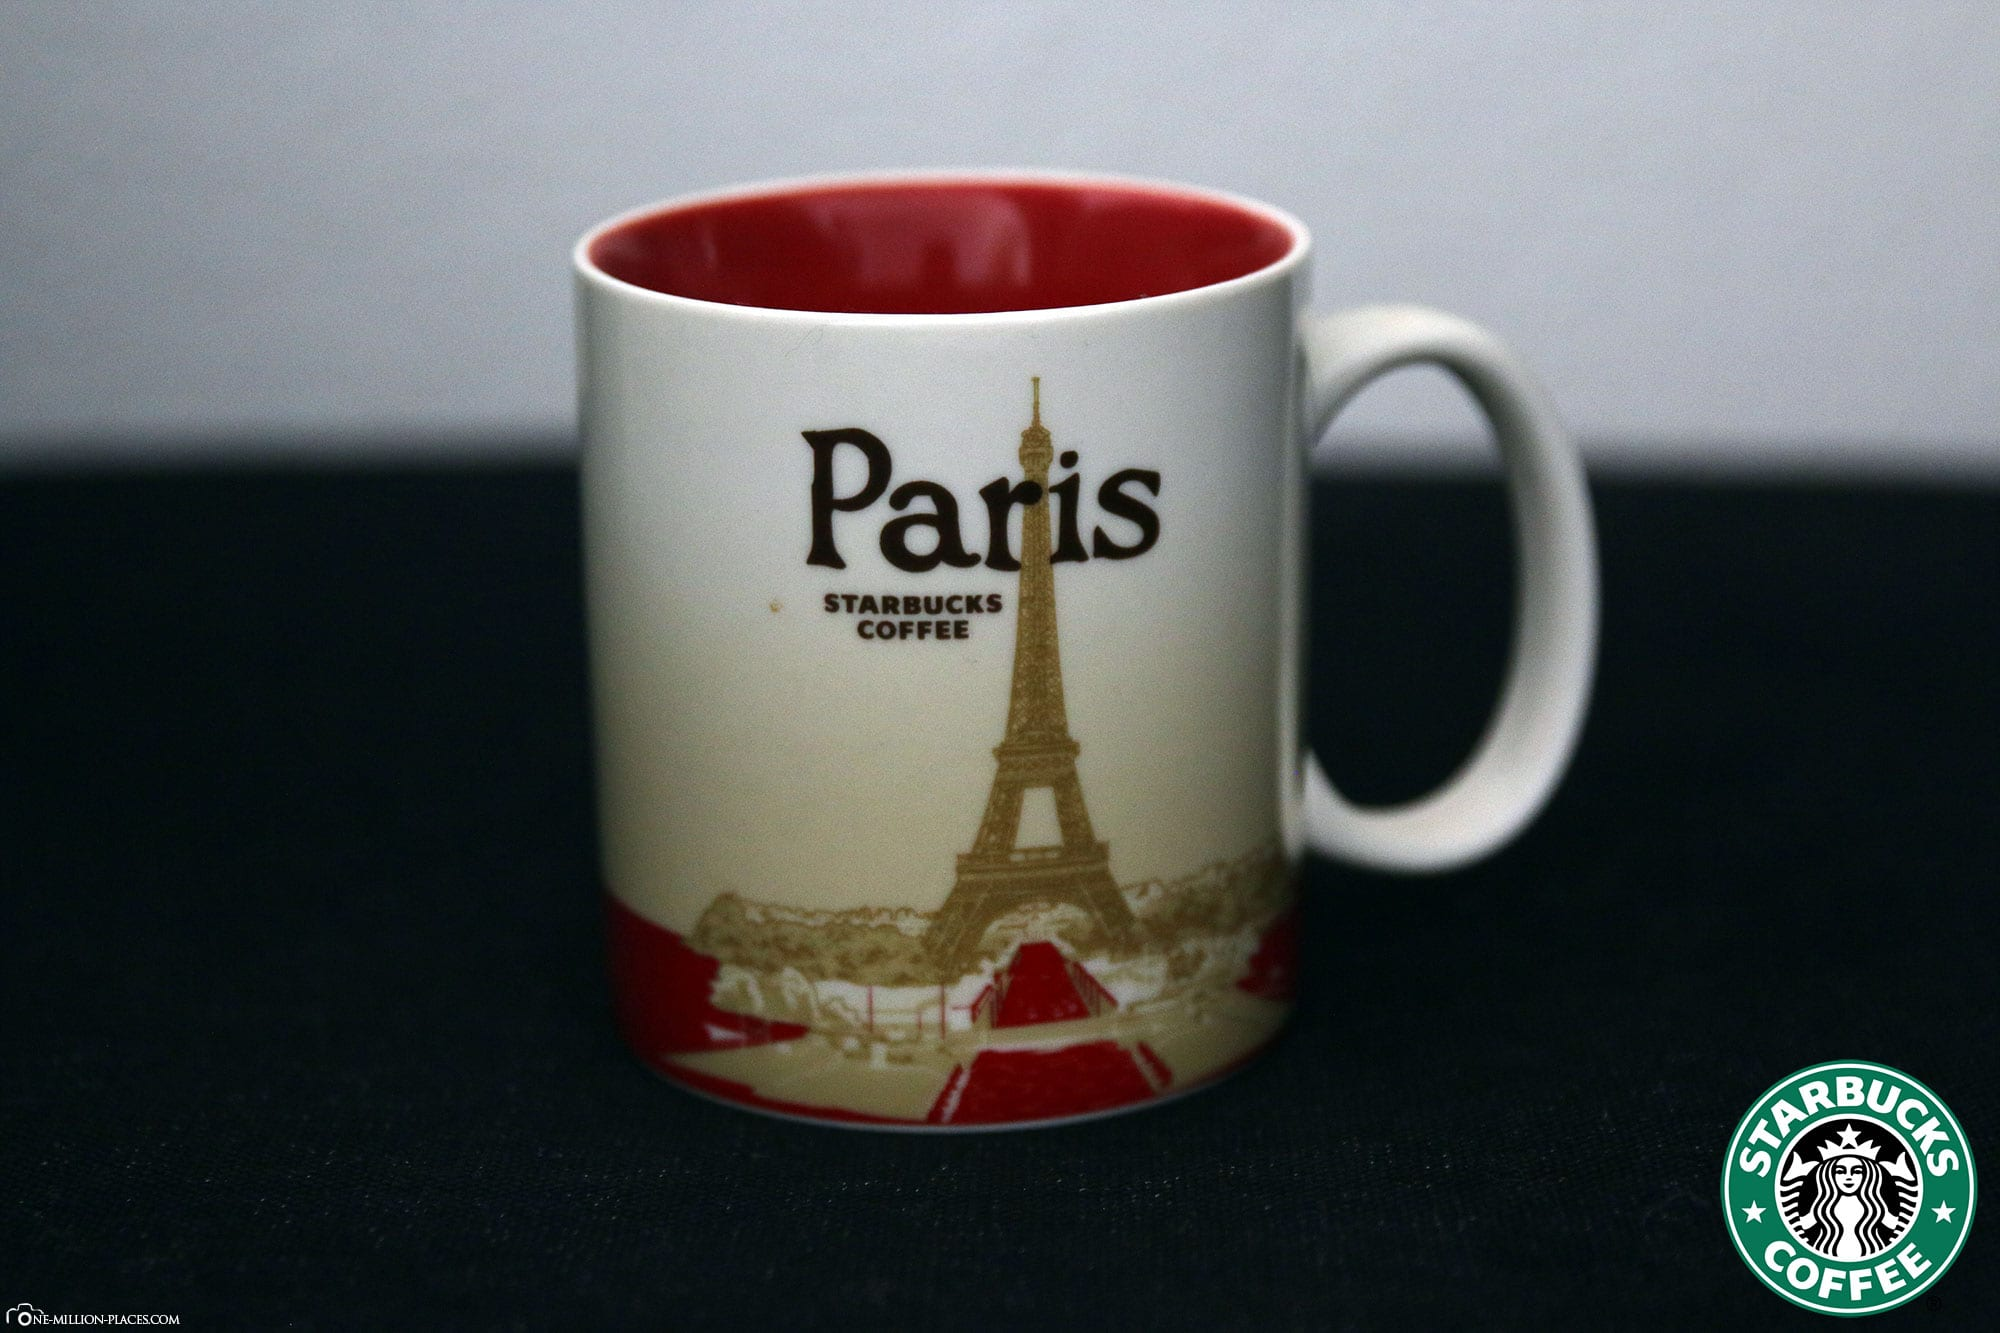 Paris, Starbucks Cup, Global Icon Series, City Mugs, Collection, France, Travelreport